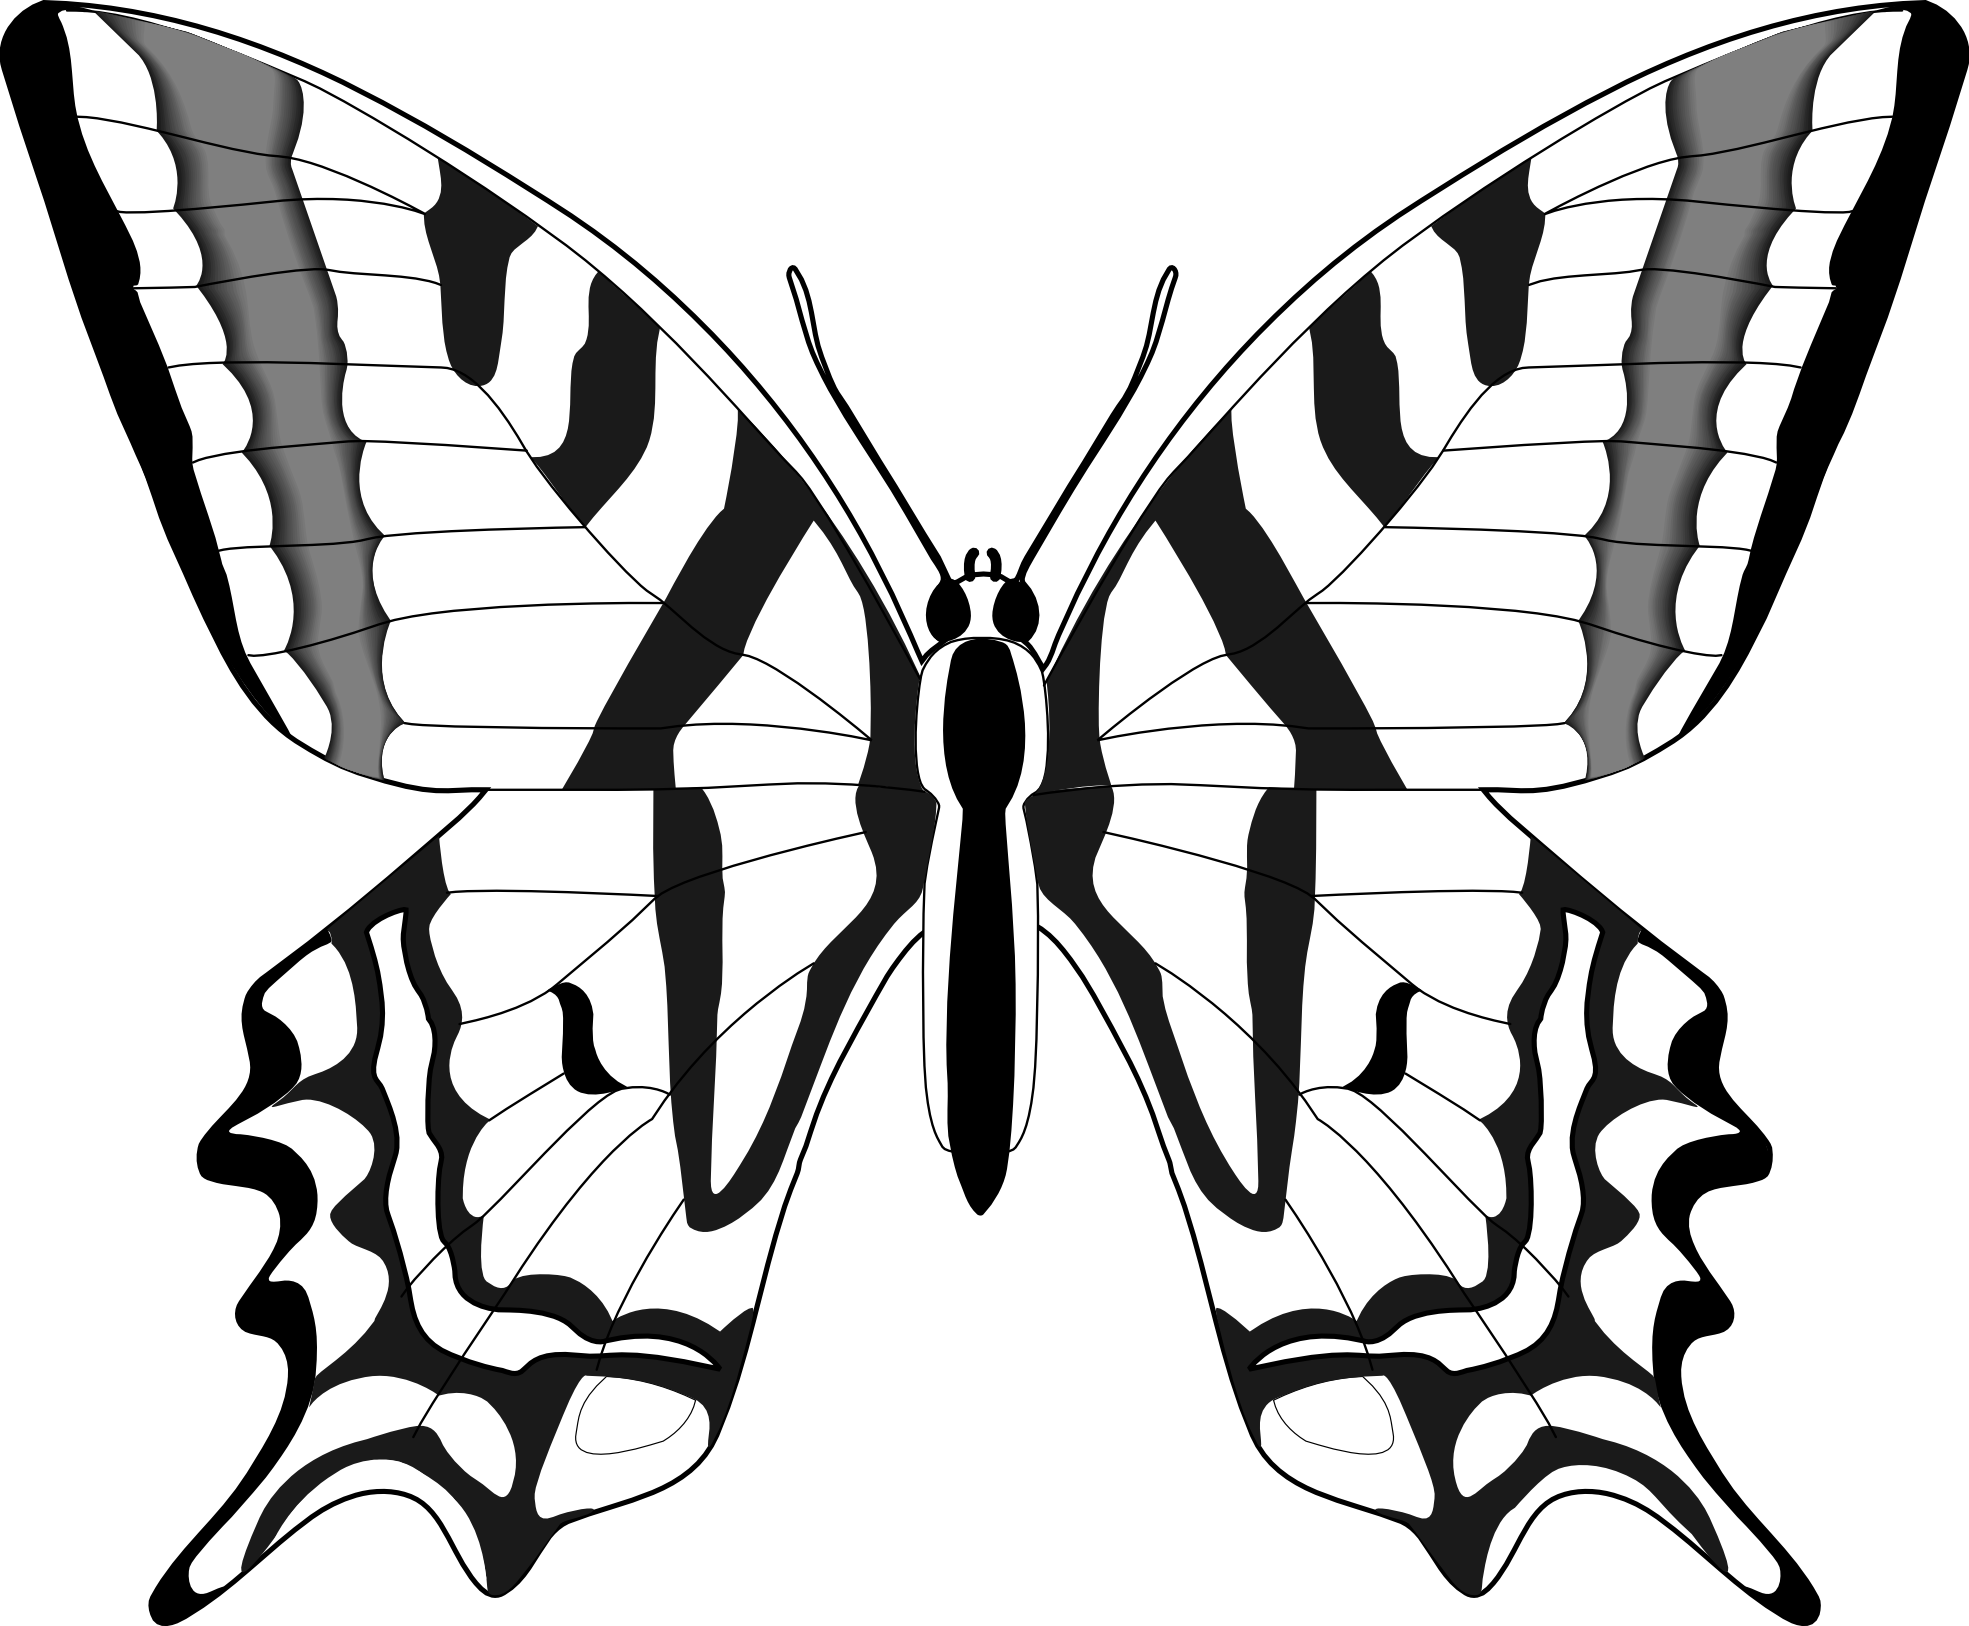 Butterfly clip art line drawing. Simple black and white